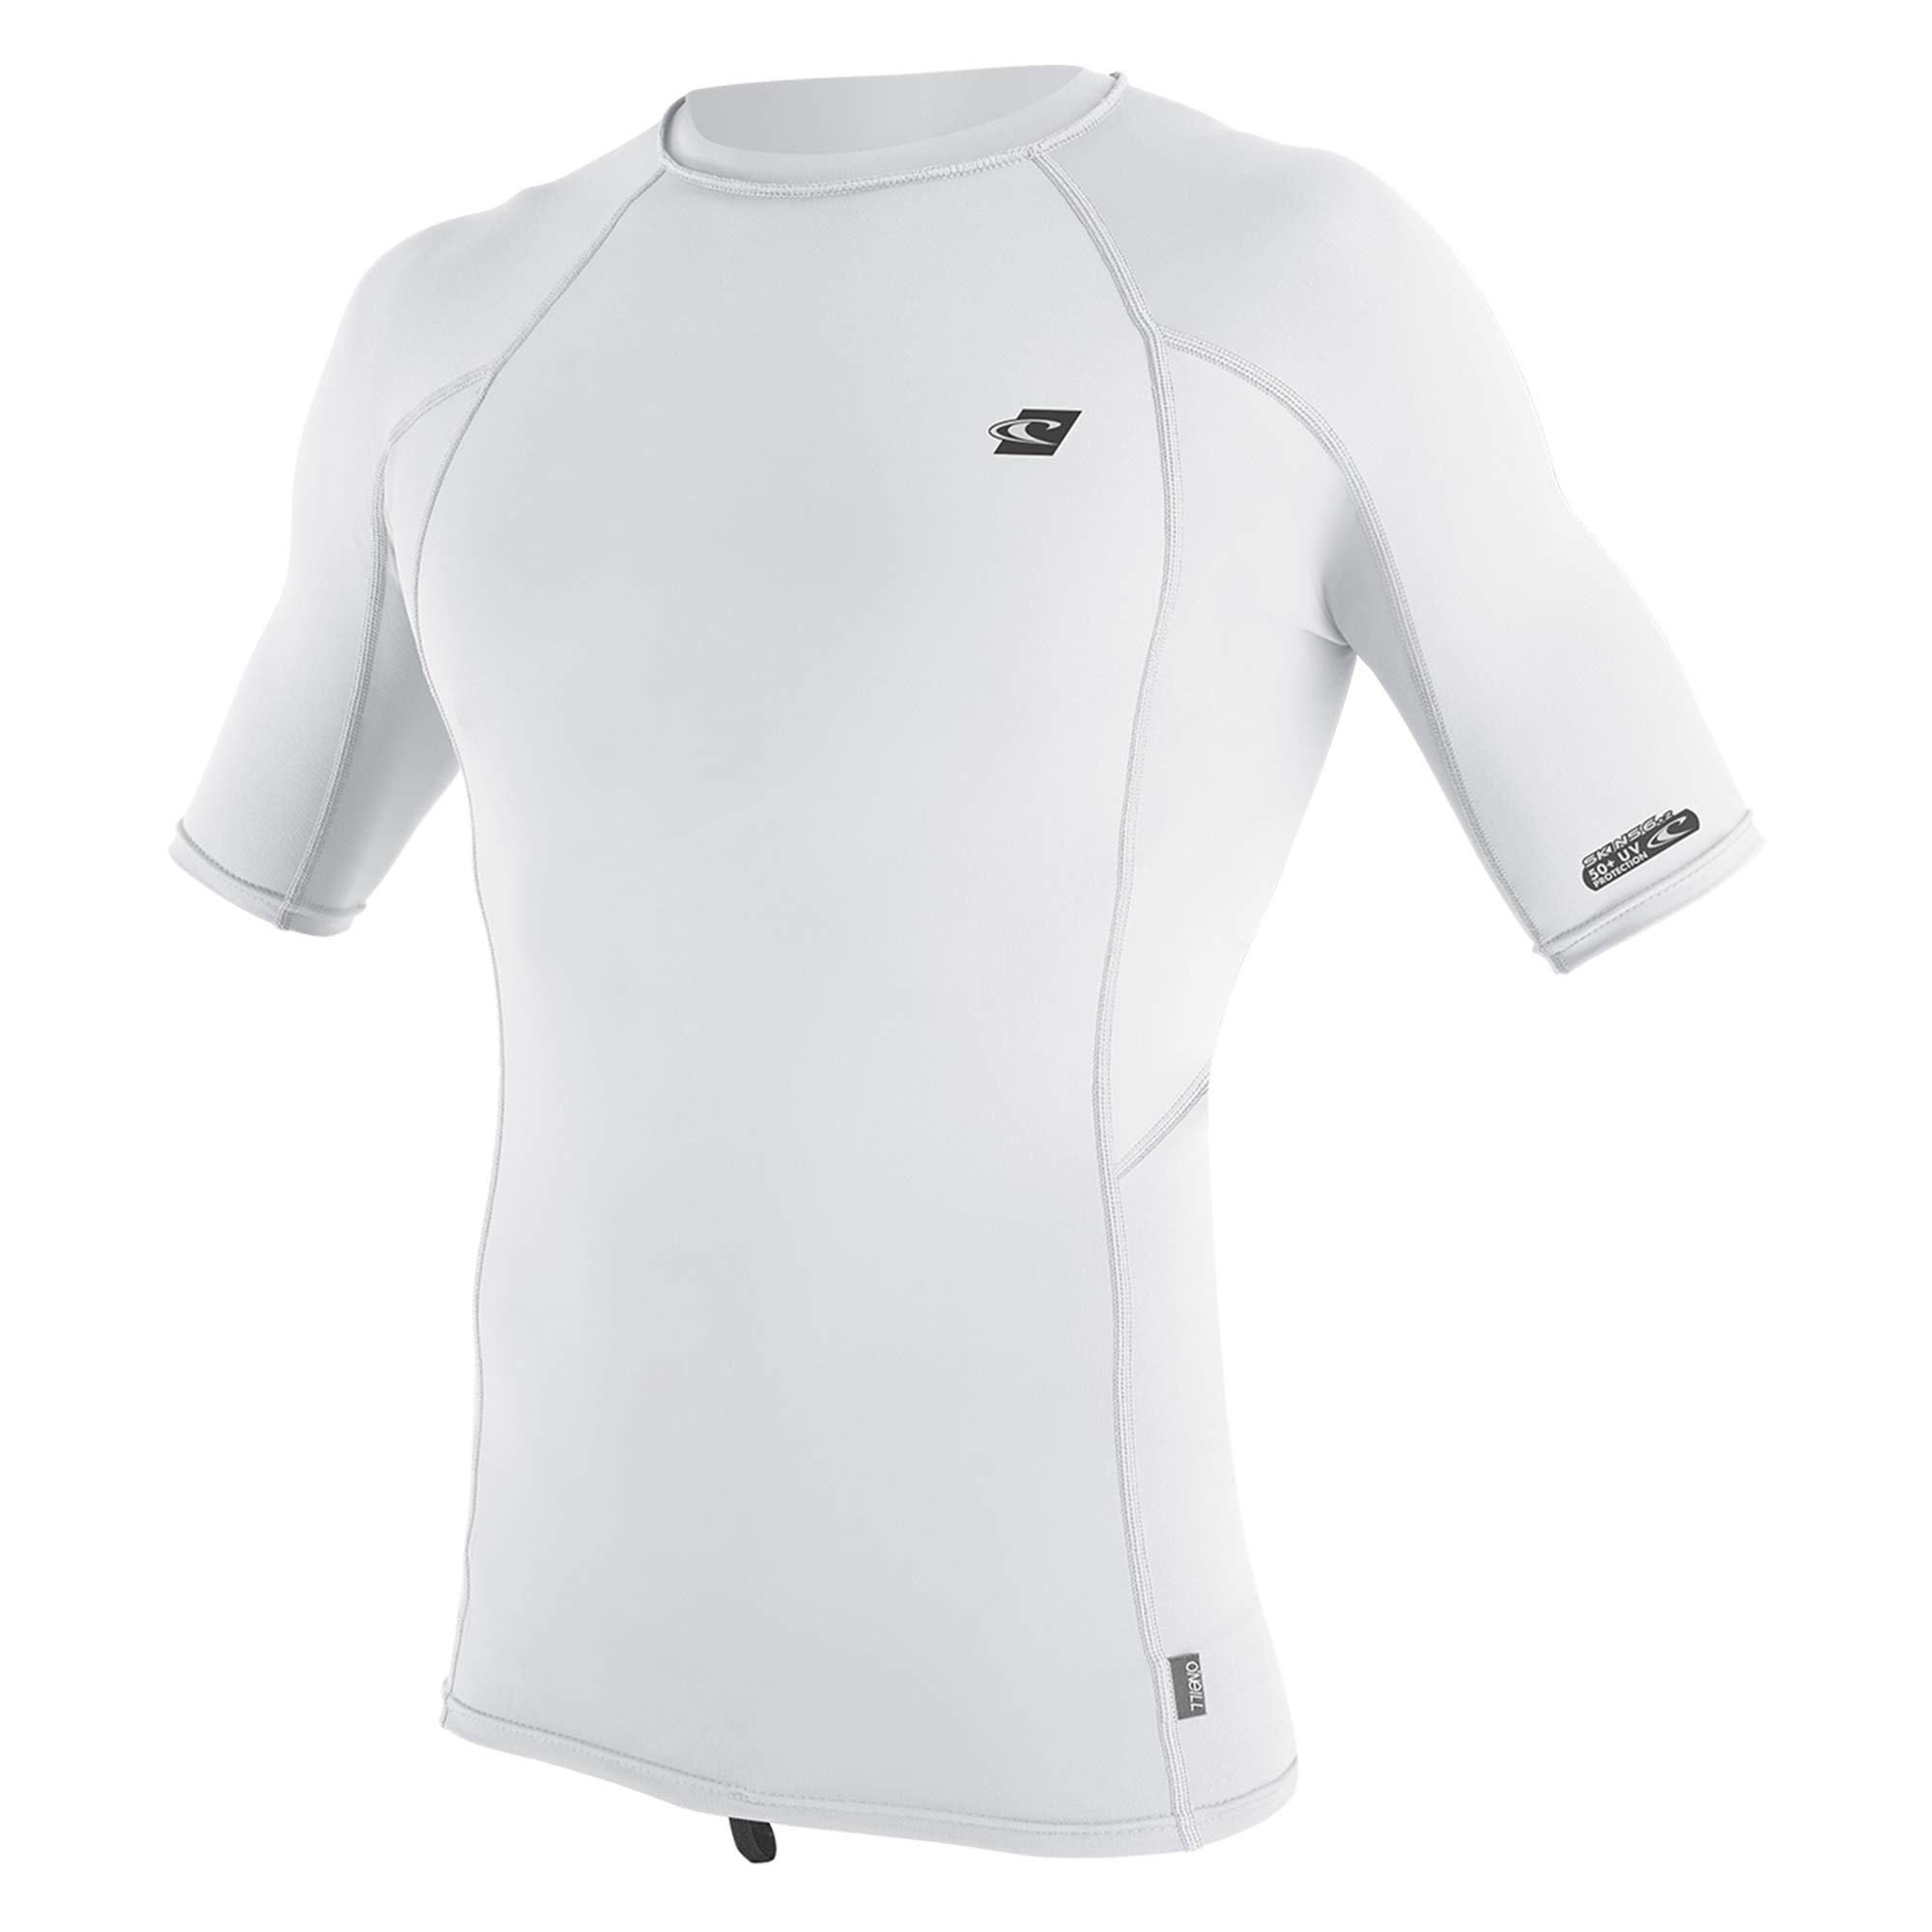 O'Neill Men's Premium Skins UPF 50+ Short Sleeve Rash Guard, White, Large by O'Neill Wetsuits